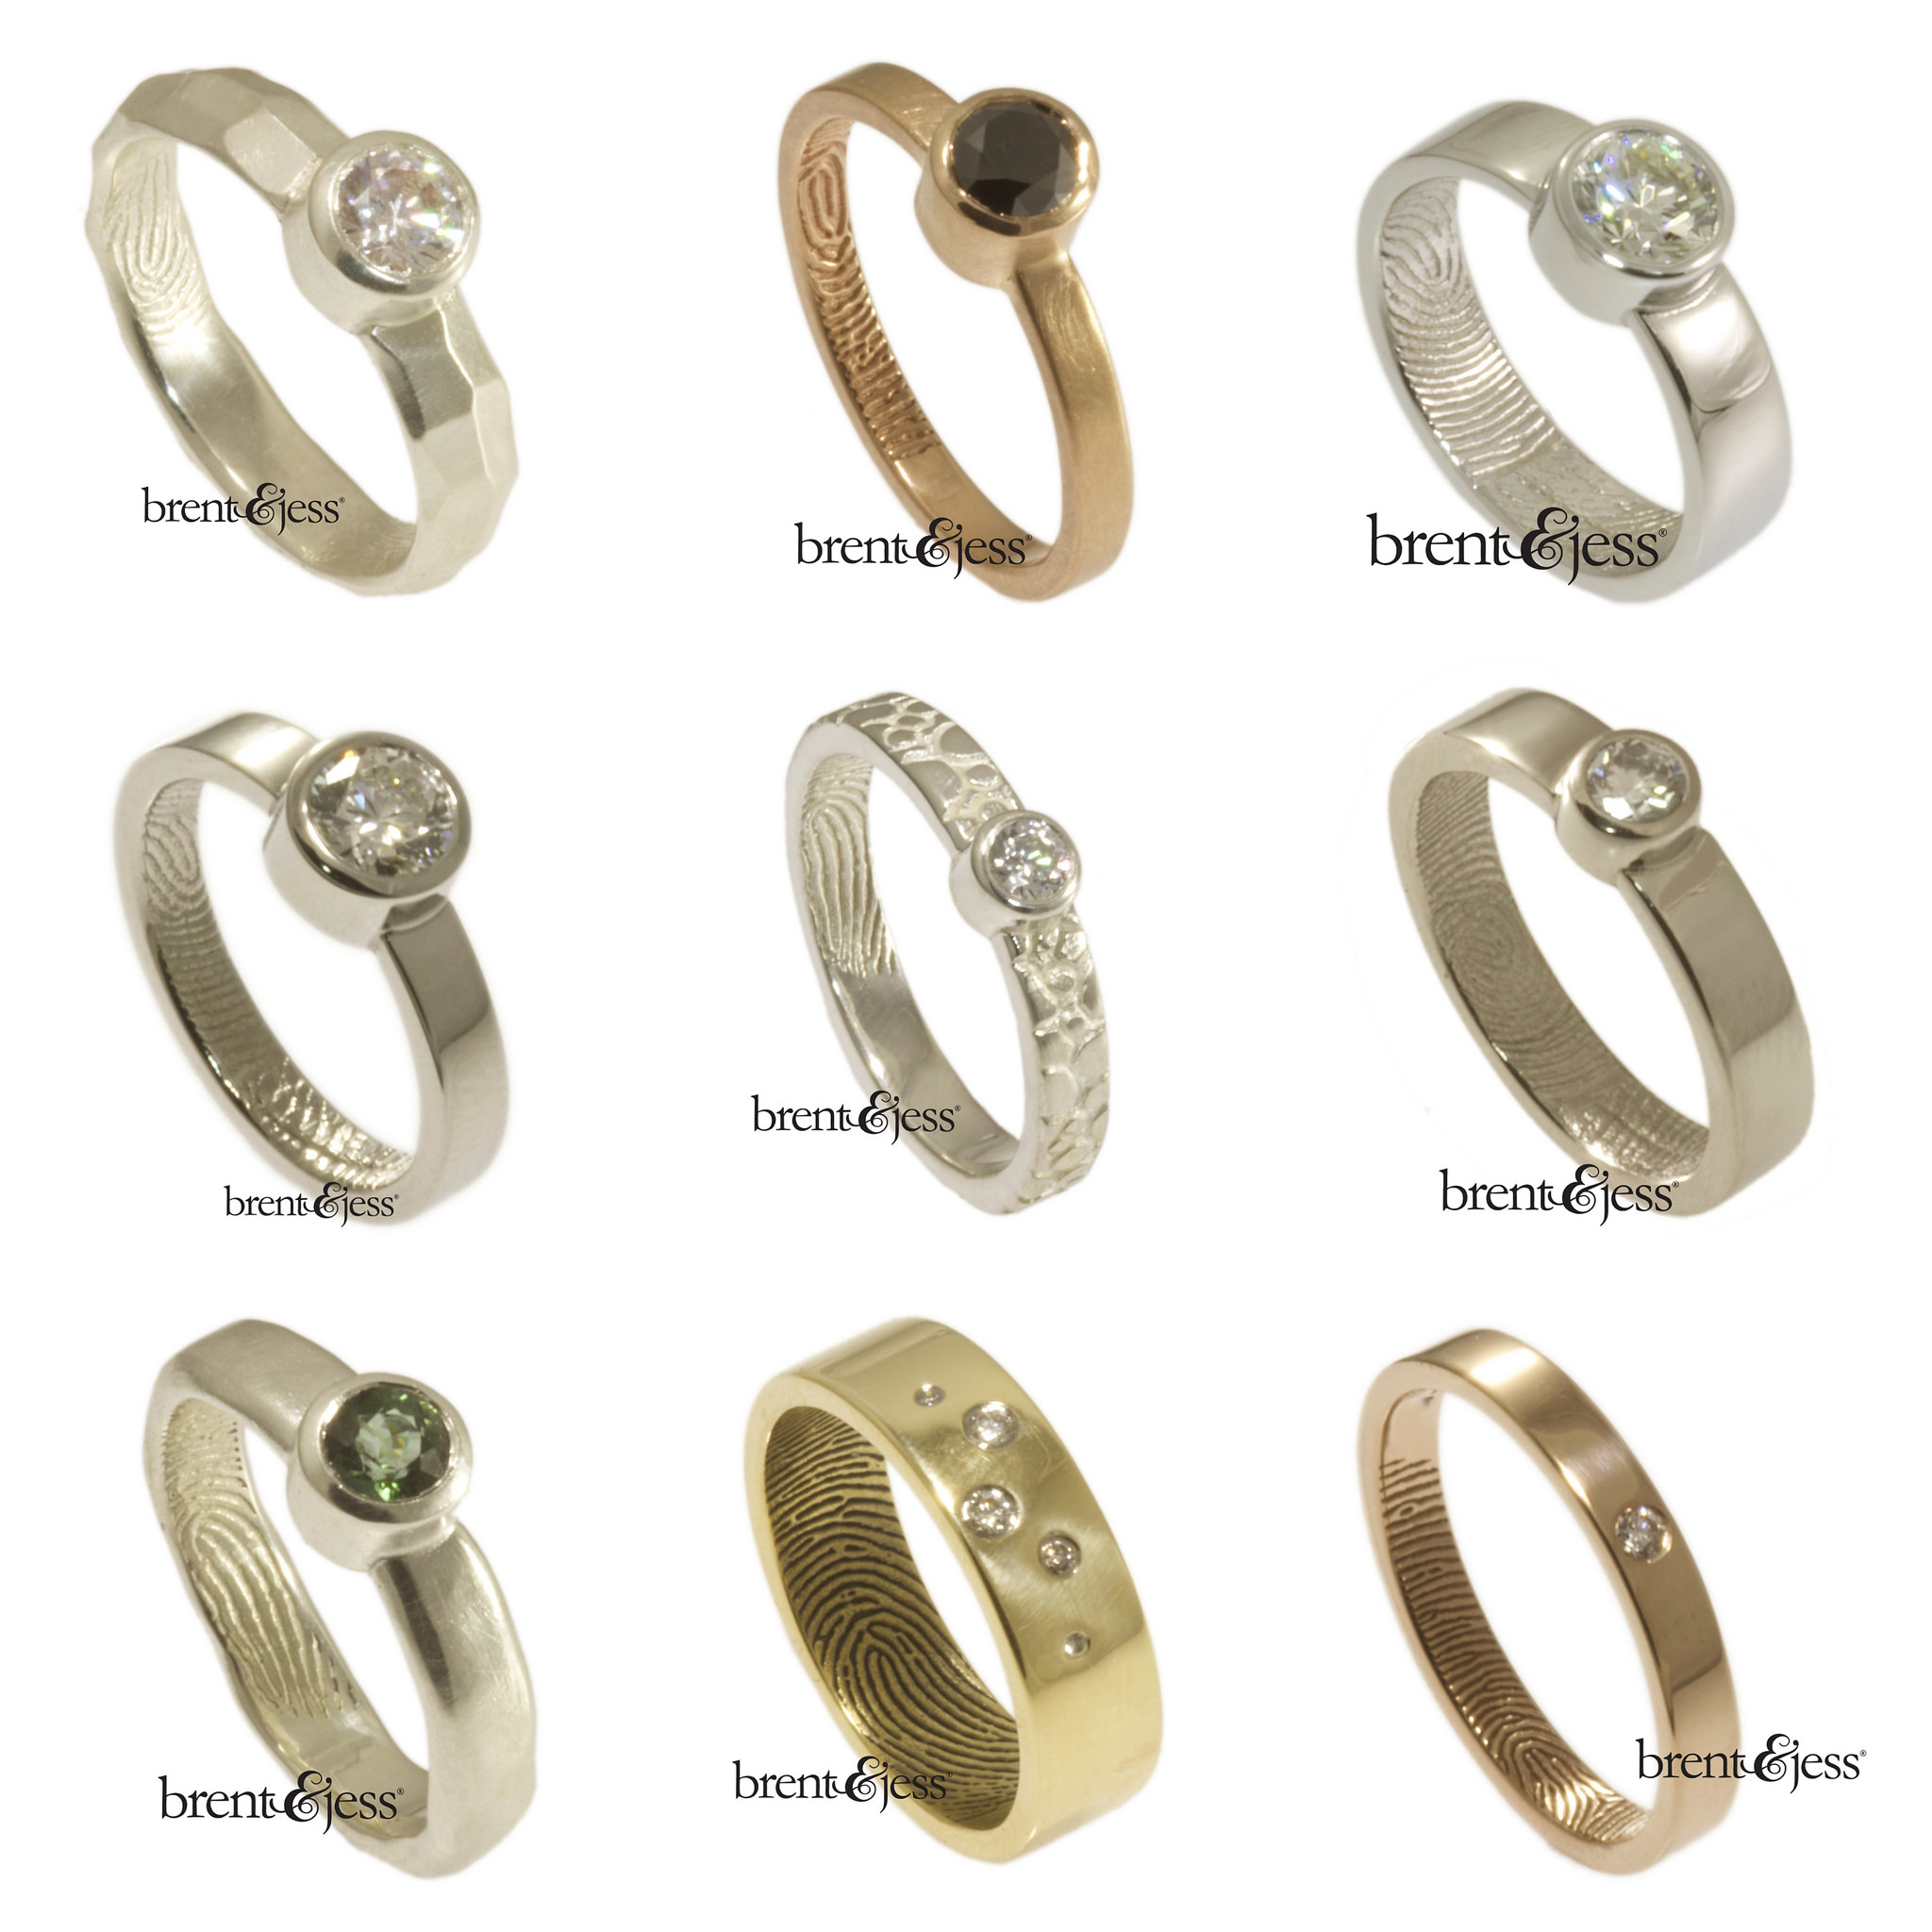 engagement ring under 1k non traditional wedding rings 10 Non Traditional Engagement Rings for Under 1K A Practical Wedding We re Your Wedding Planner Wedding Ideas for Brides Bridesmaids Grooms